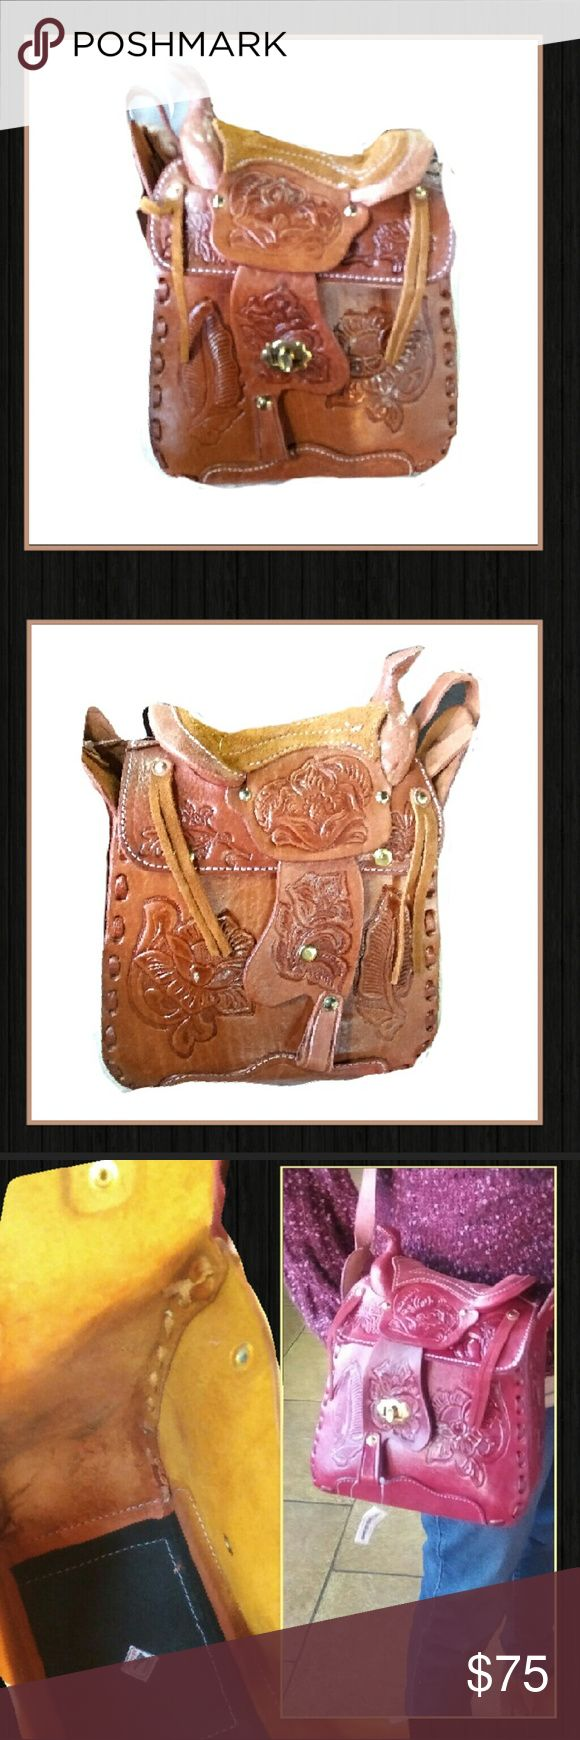 Saddle Bag in Tobacco Brown Saddle Bag in Tobacco Brown! Cute and trendy saddle bag that brings new meaning to saddle bag! It has the actual shape of a real saddle bag up top, embossed leather and awesome details! Make it yours today! We carry this bag in black and also cherry red! Strap can be worn as shoulder or crossbody! boutique Bags